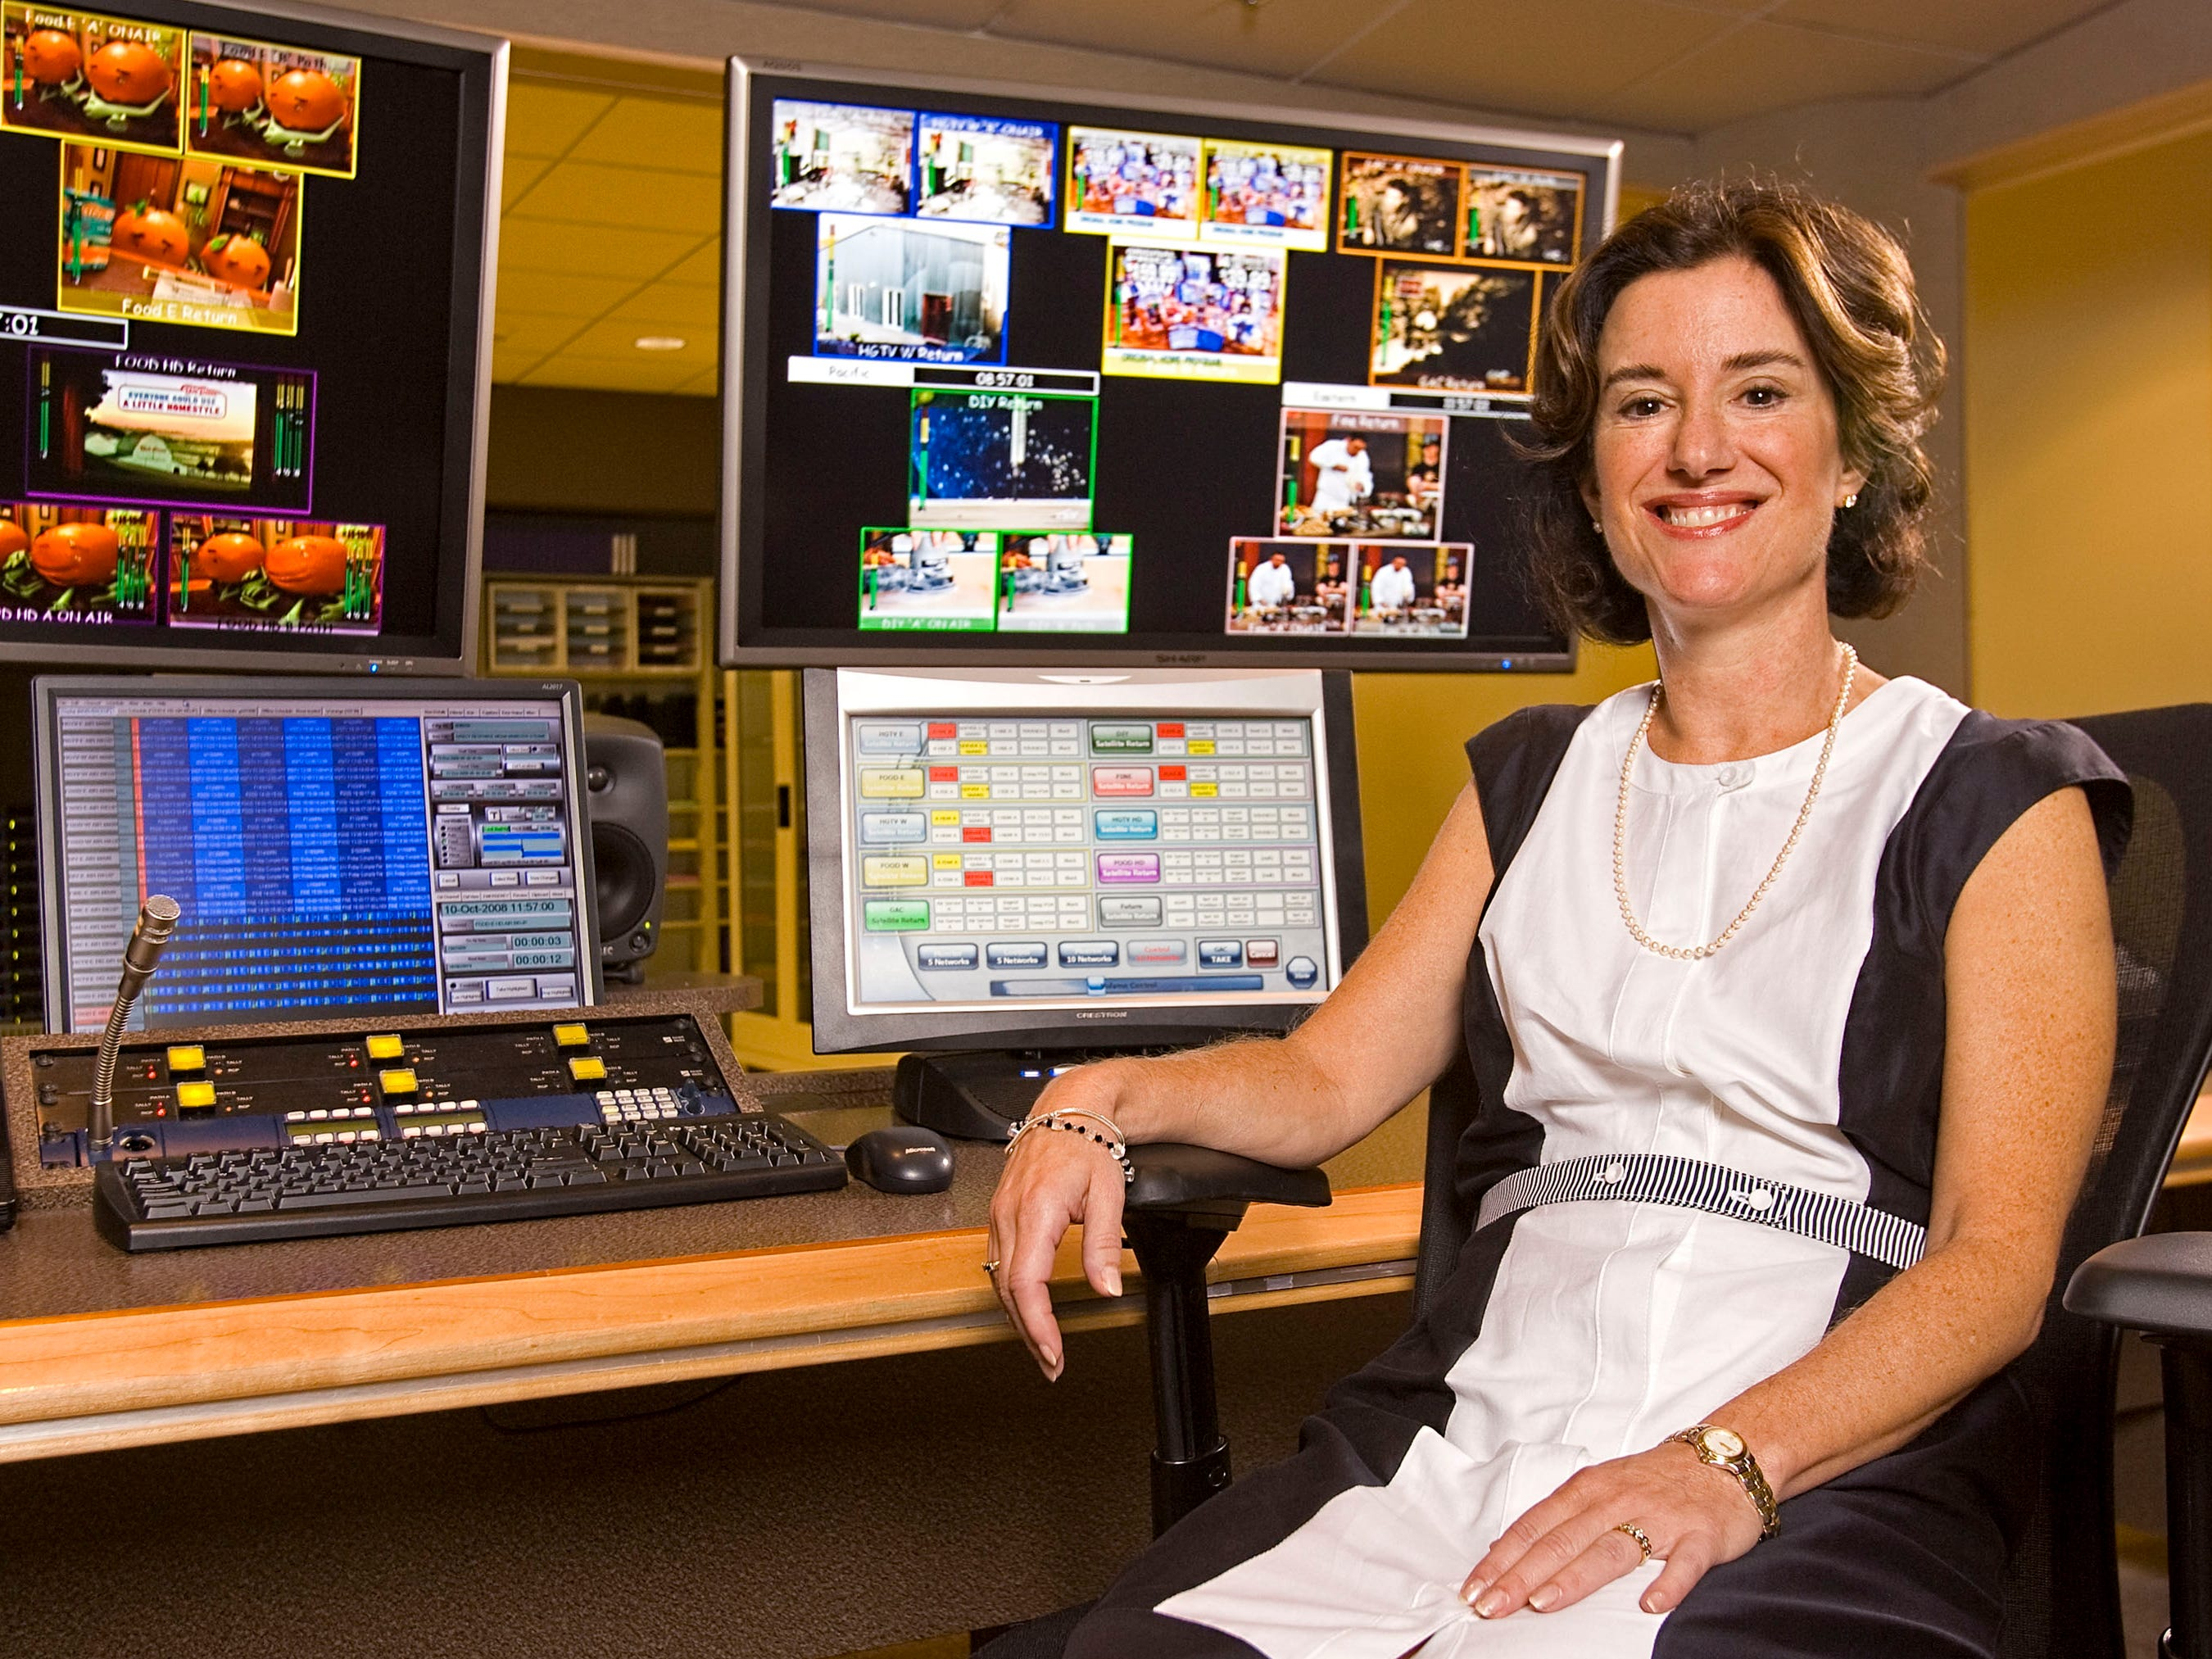 Susan Packard sits in the operations center at HGTV's corporate headquarters Friday, Oct. 10, 2008.